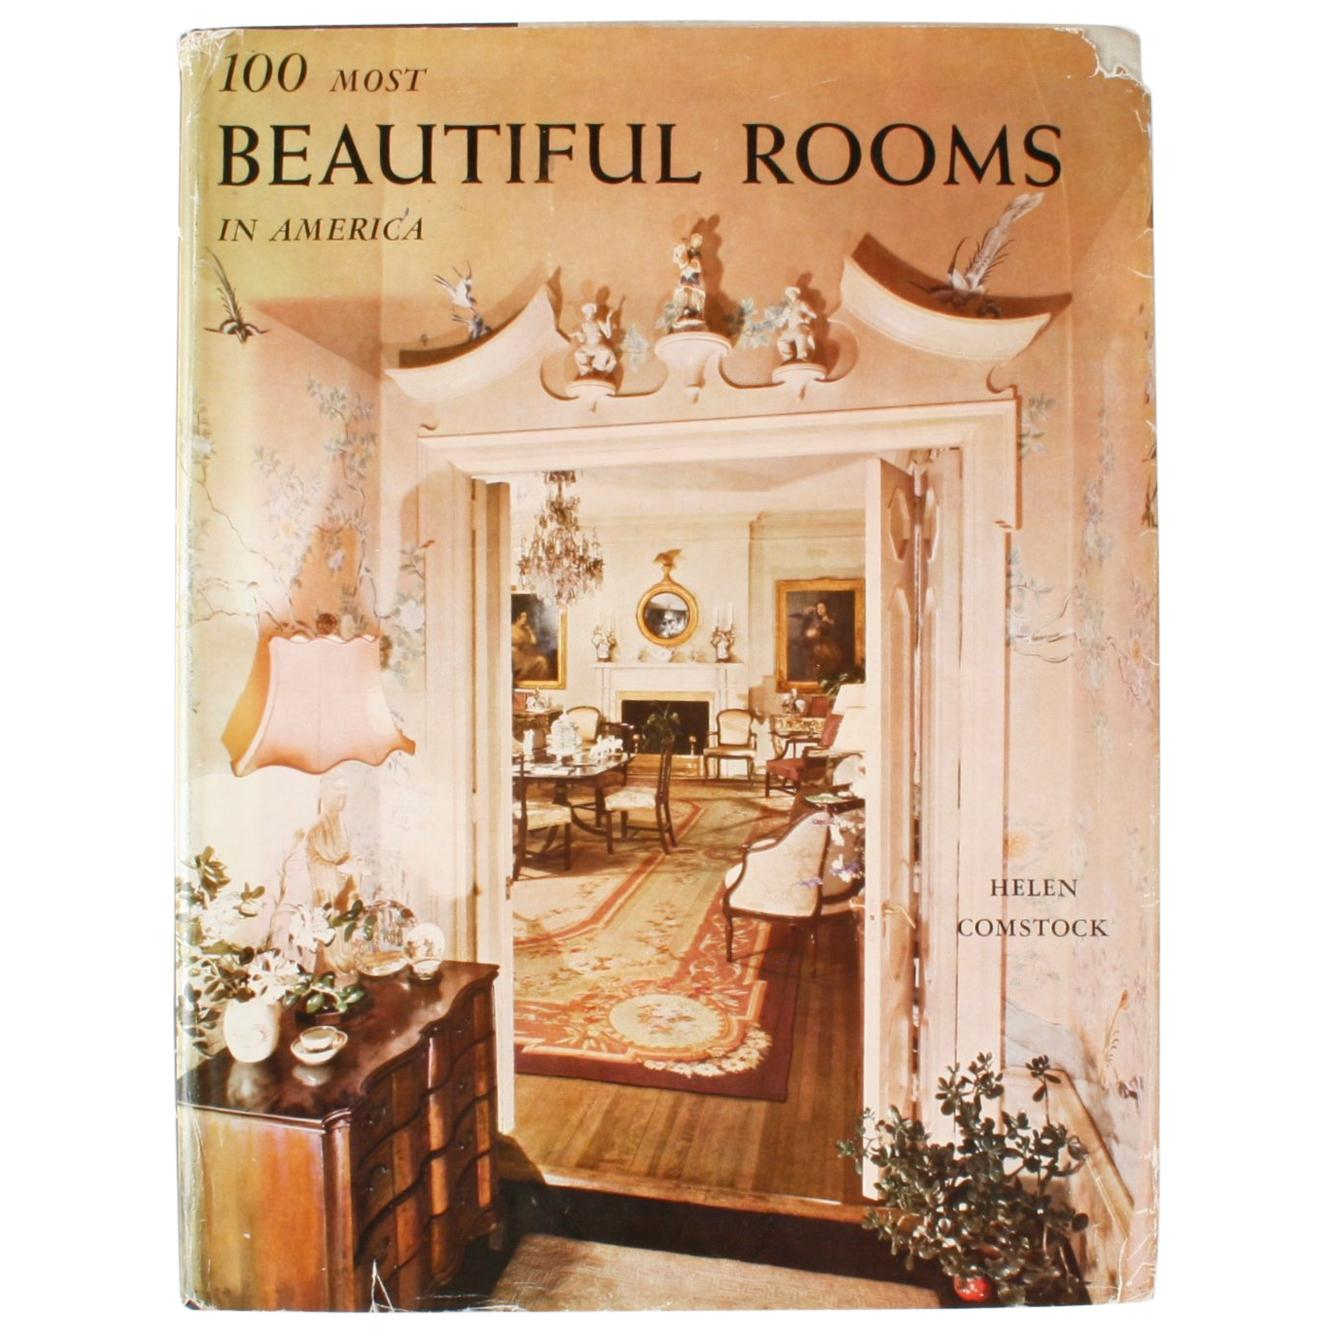 100 Most Beautiful Rooms in America by Helen Comstock